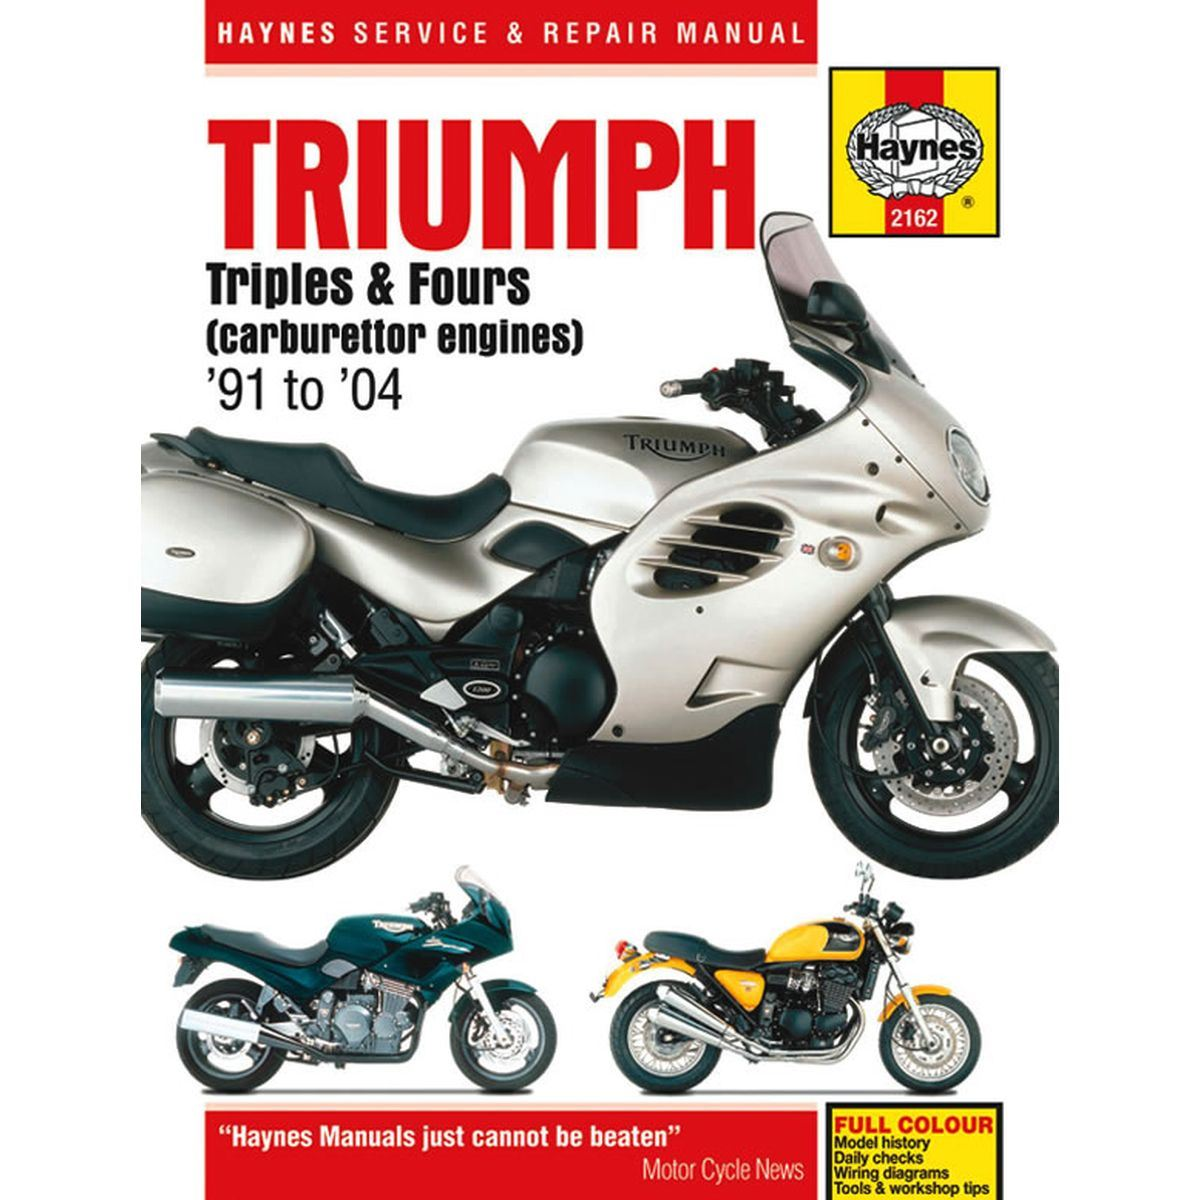 Image is loading Manual-Haynes-for-1999-Triumph-Trophy-1200-4-